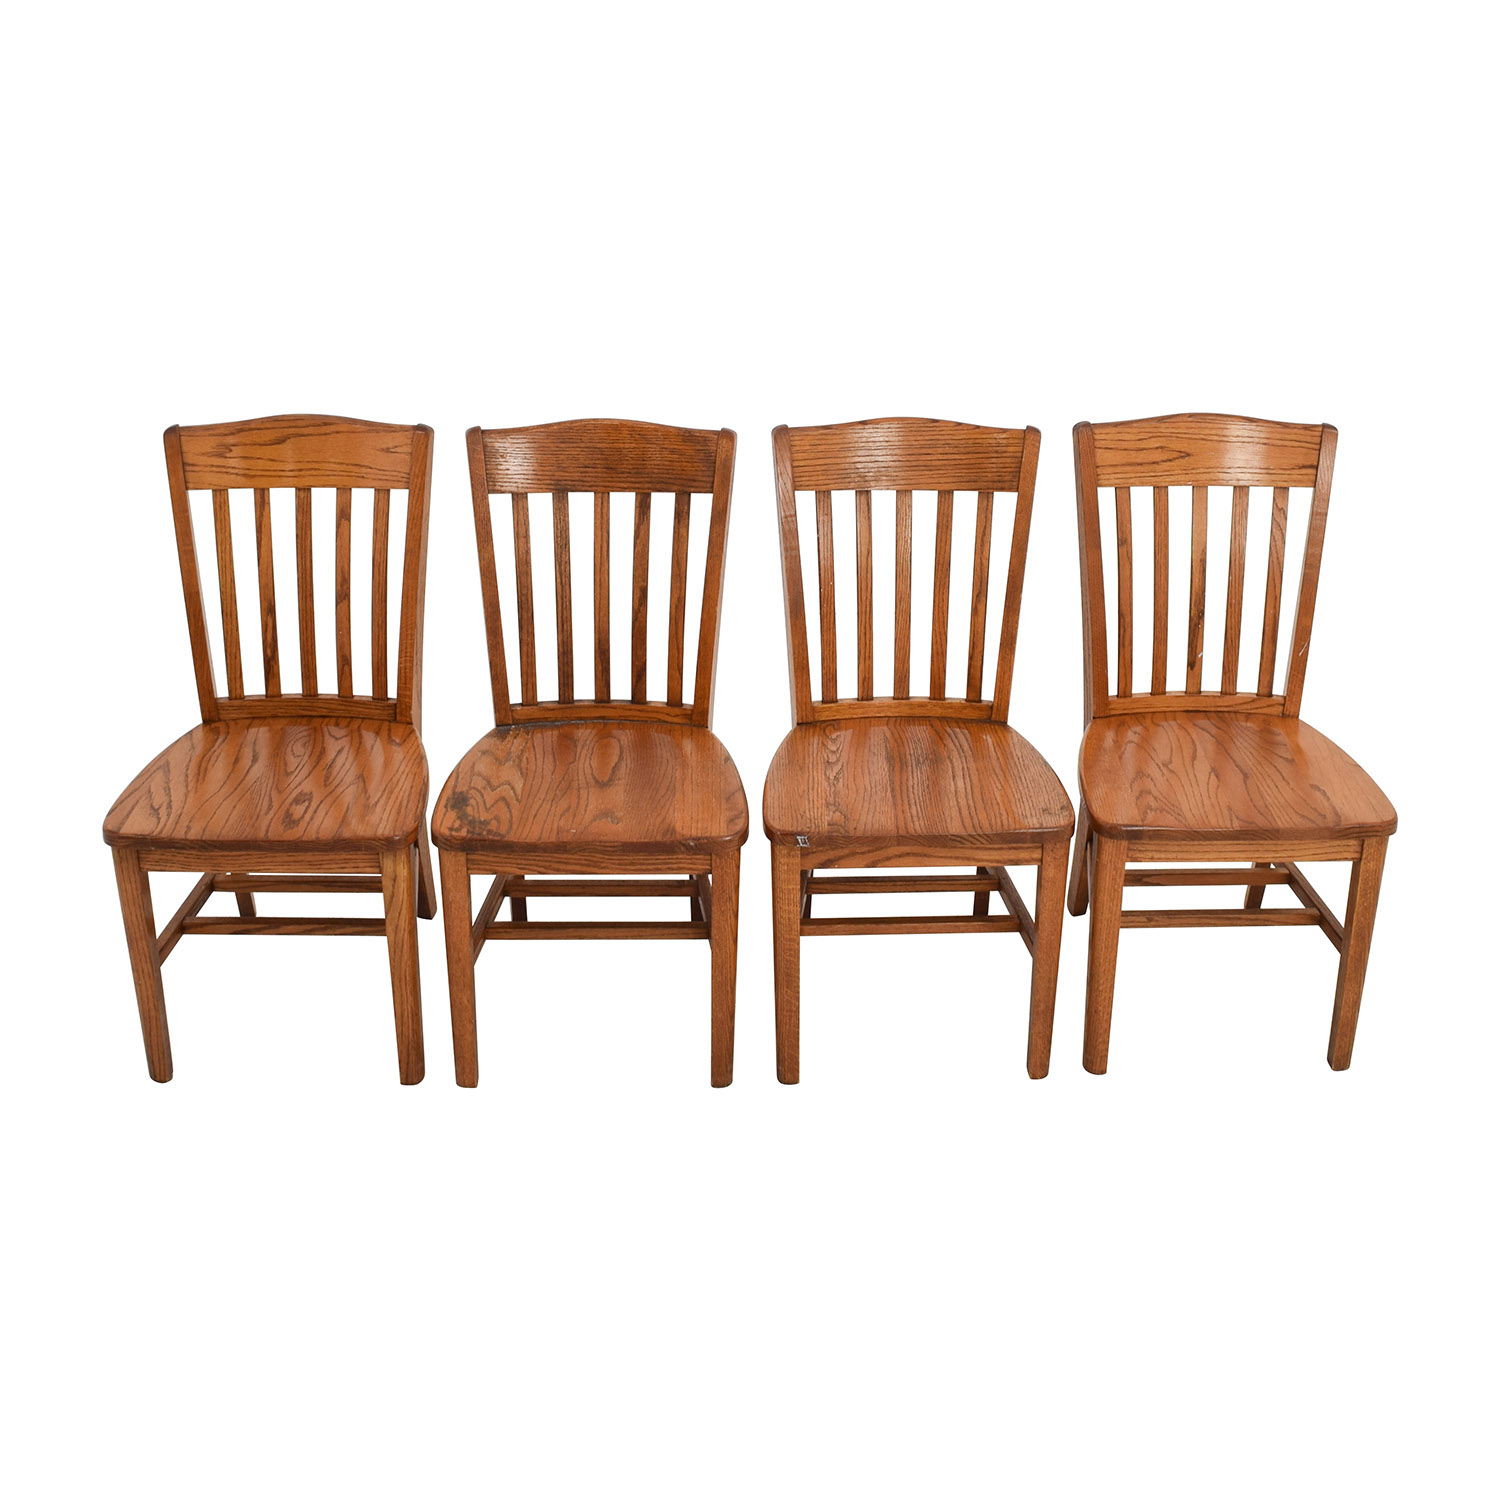 ... Four Brown Slat Back Wood Chairs ...